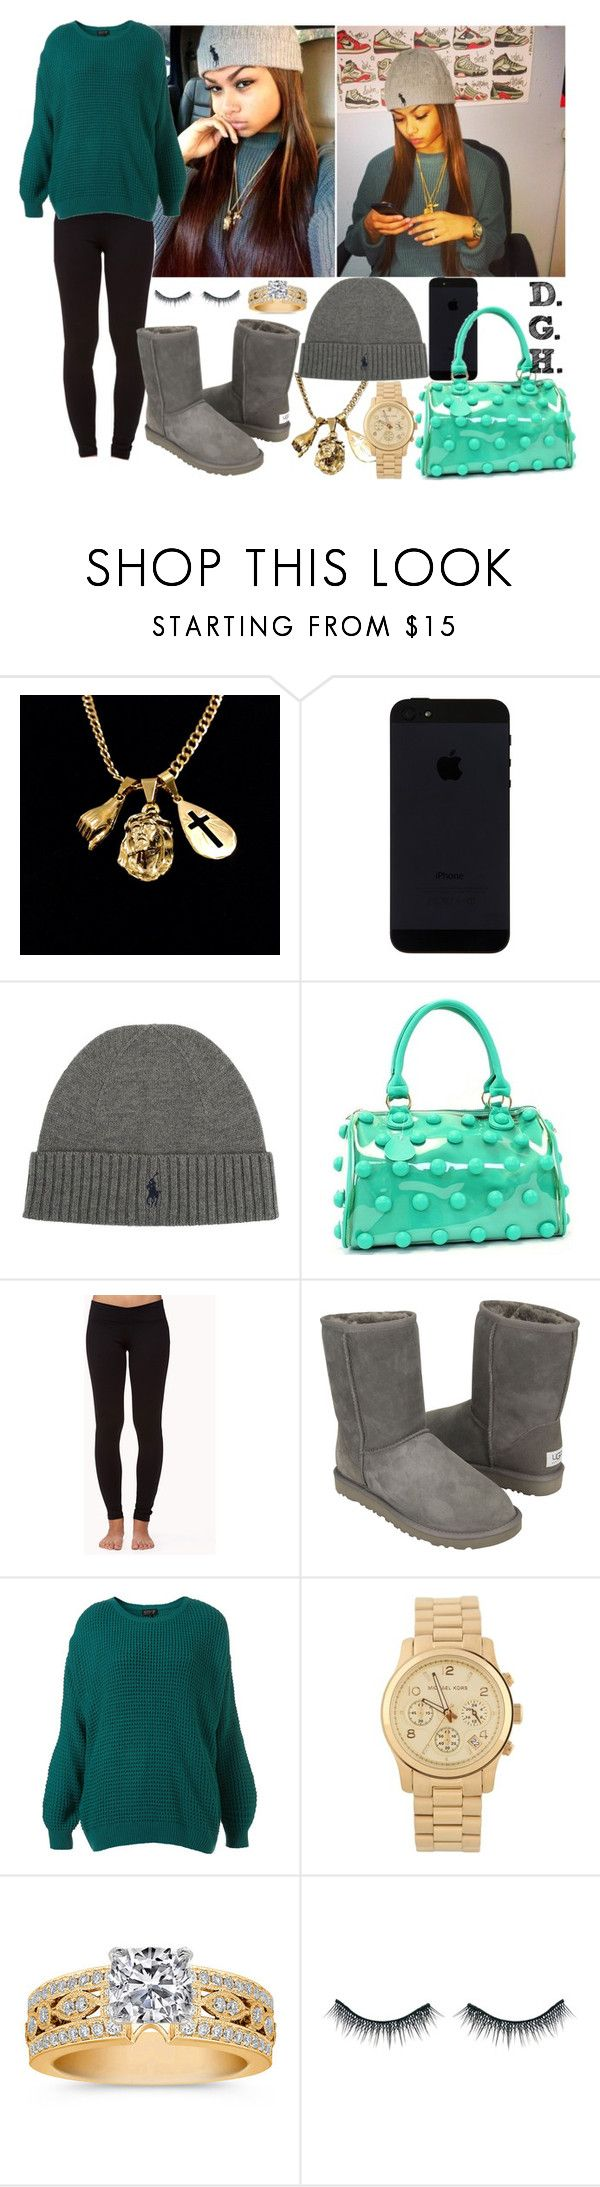 """""""Polo Warm."""" by dopegenhope ❤ liked on Polyvore featuring Polo Ralph Lauren, Forever 21, UGG Australia, Michael Kors and Bourjois"""